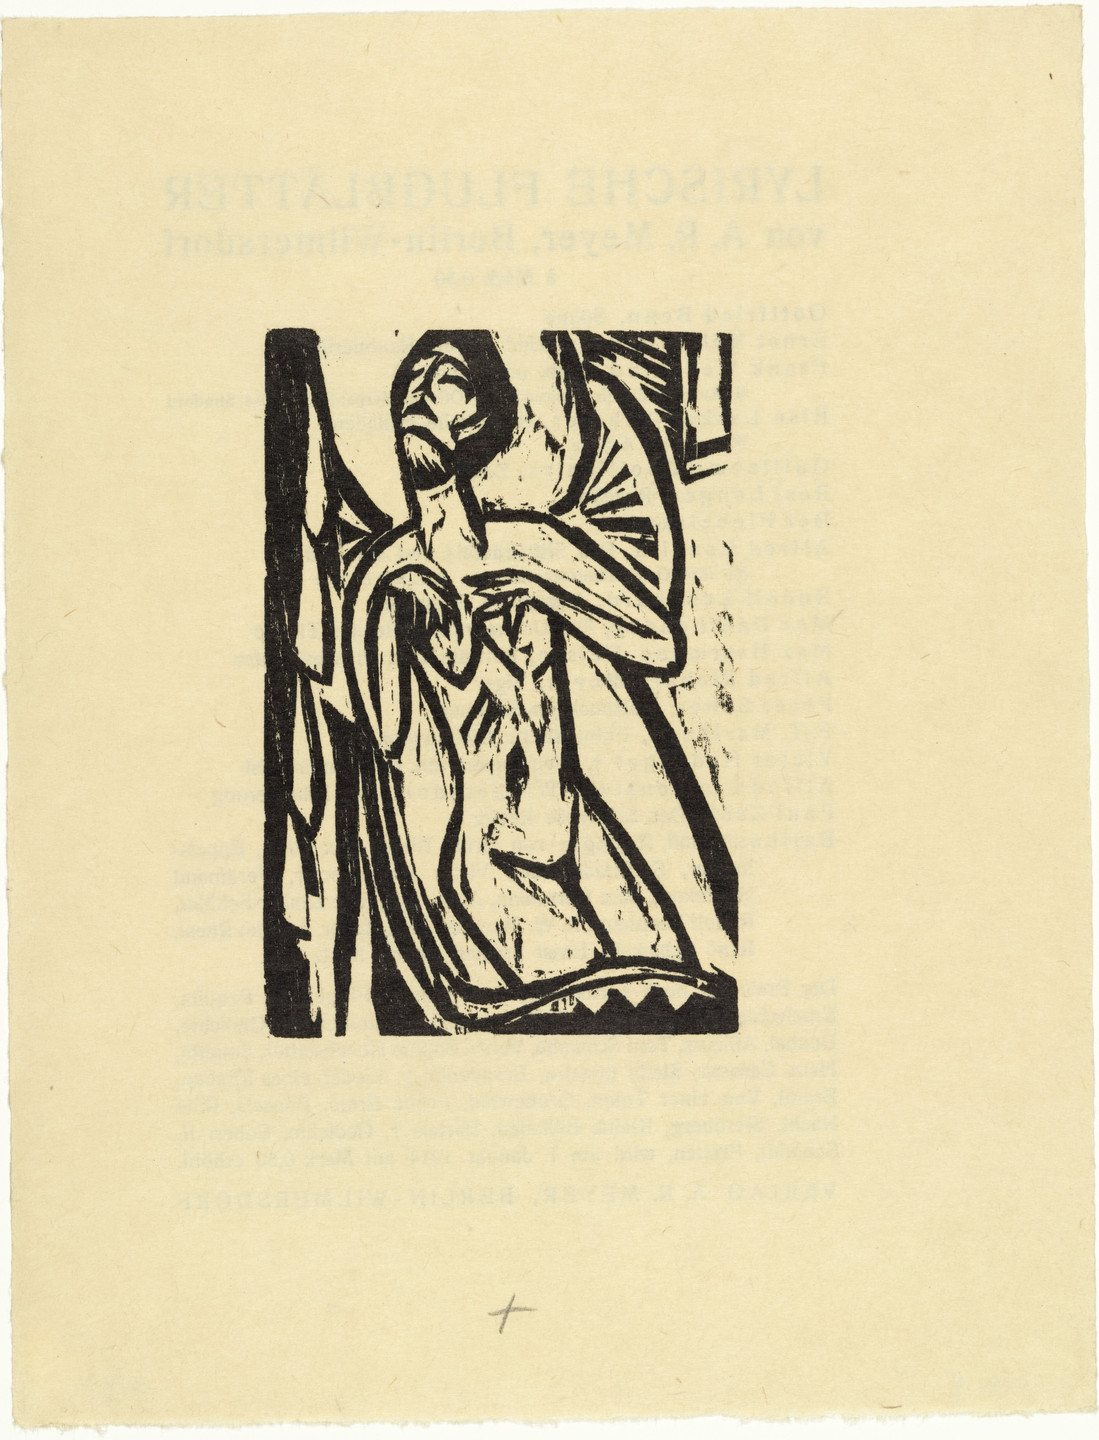 Ernst Ludwig Kirchner. Dying Old Maid (Sterbendes altes Fräulein) from the illustrated book Das Stiftsfräulein und der Tod (The Canoness and Death). (1912, published 1913)